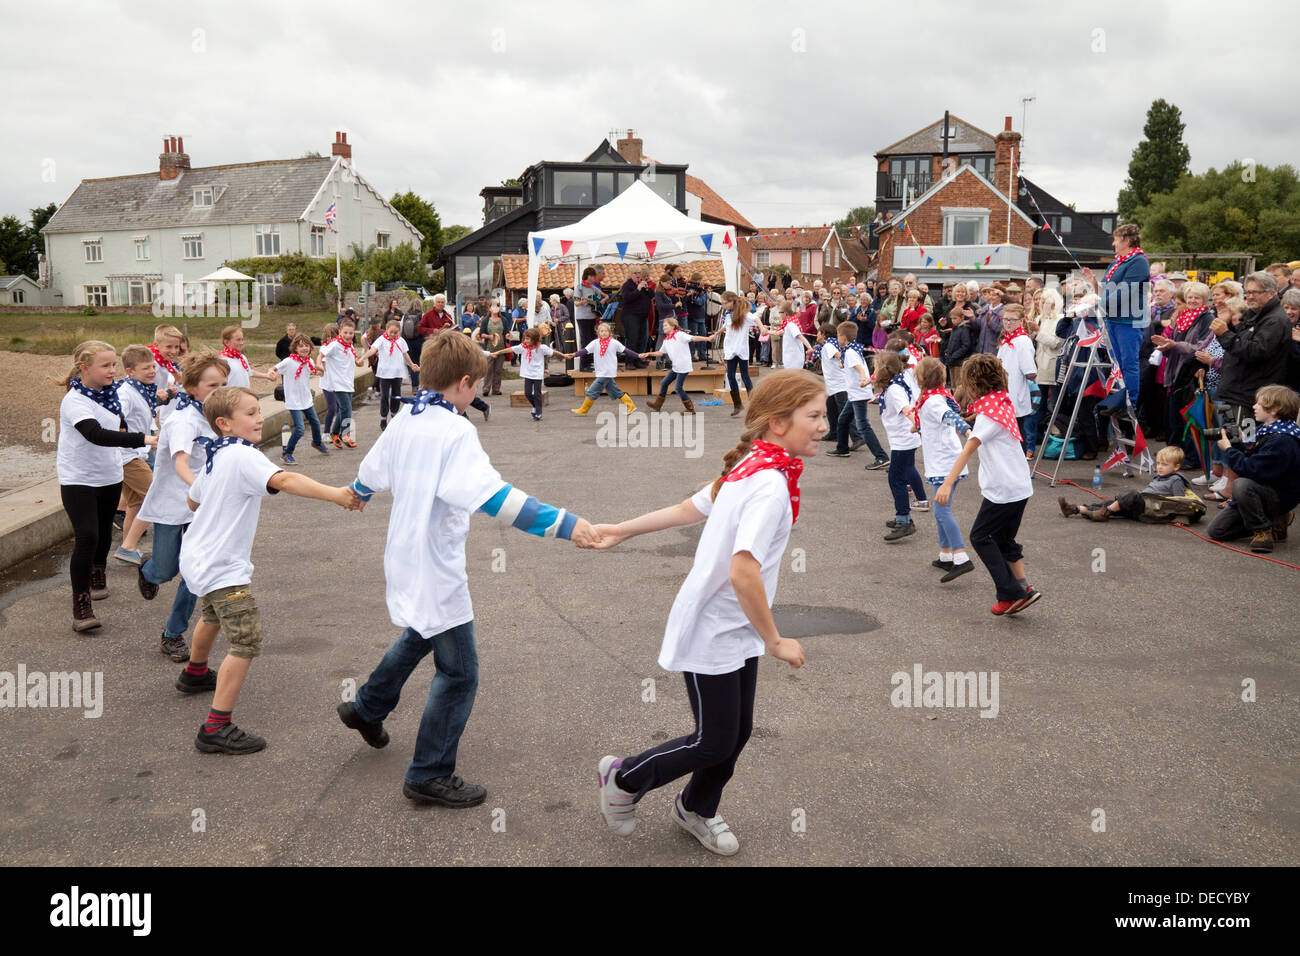 Children dancing at a village fair, Orford, village Suffolk England UK - Stock Image